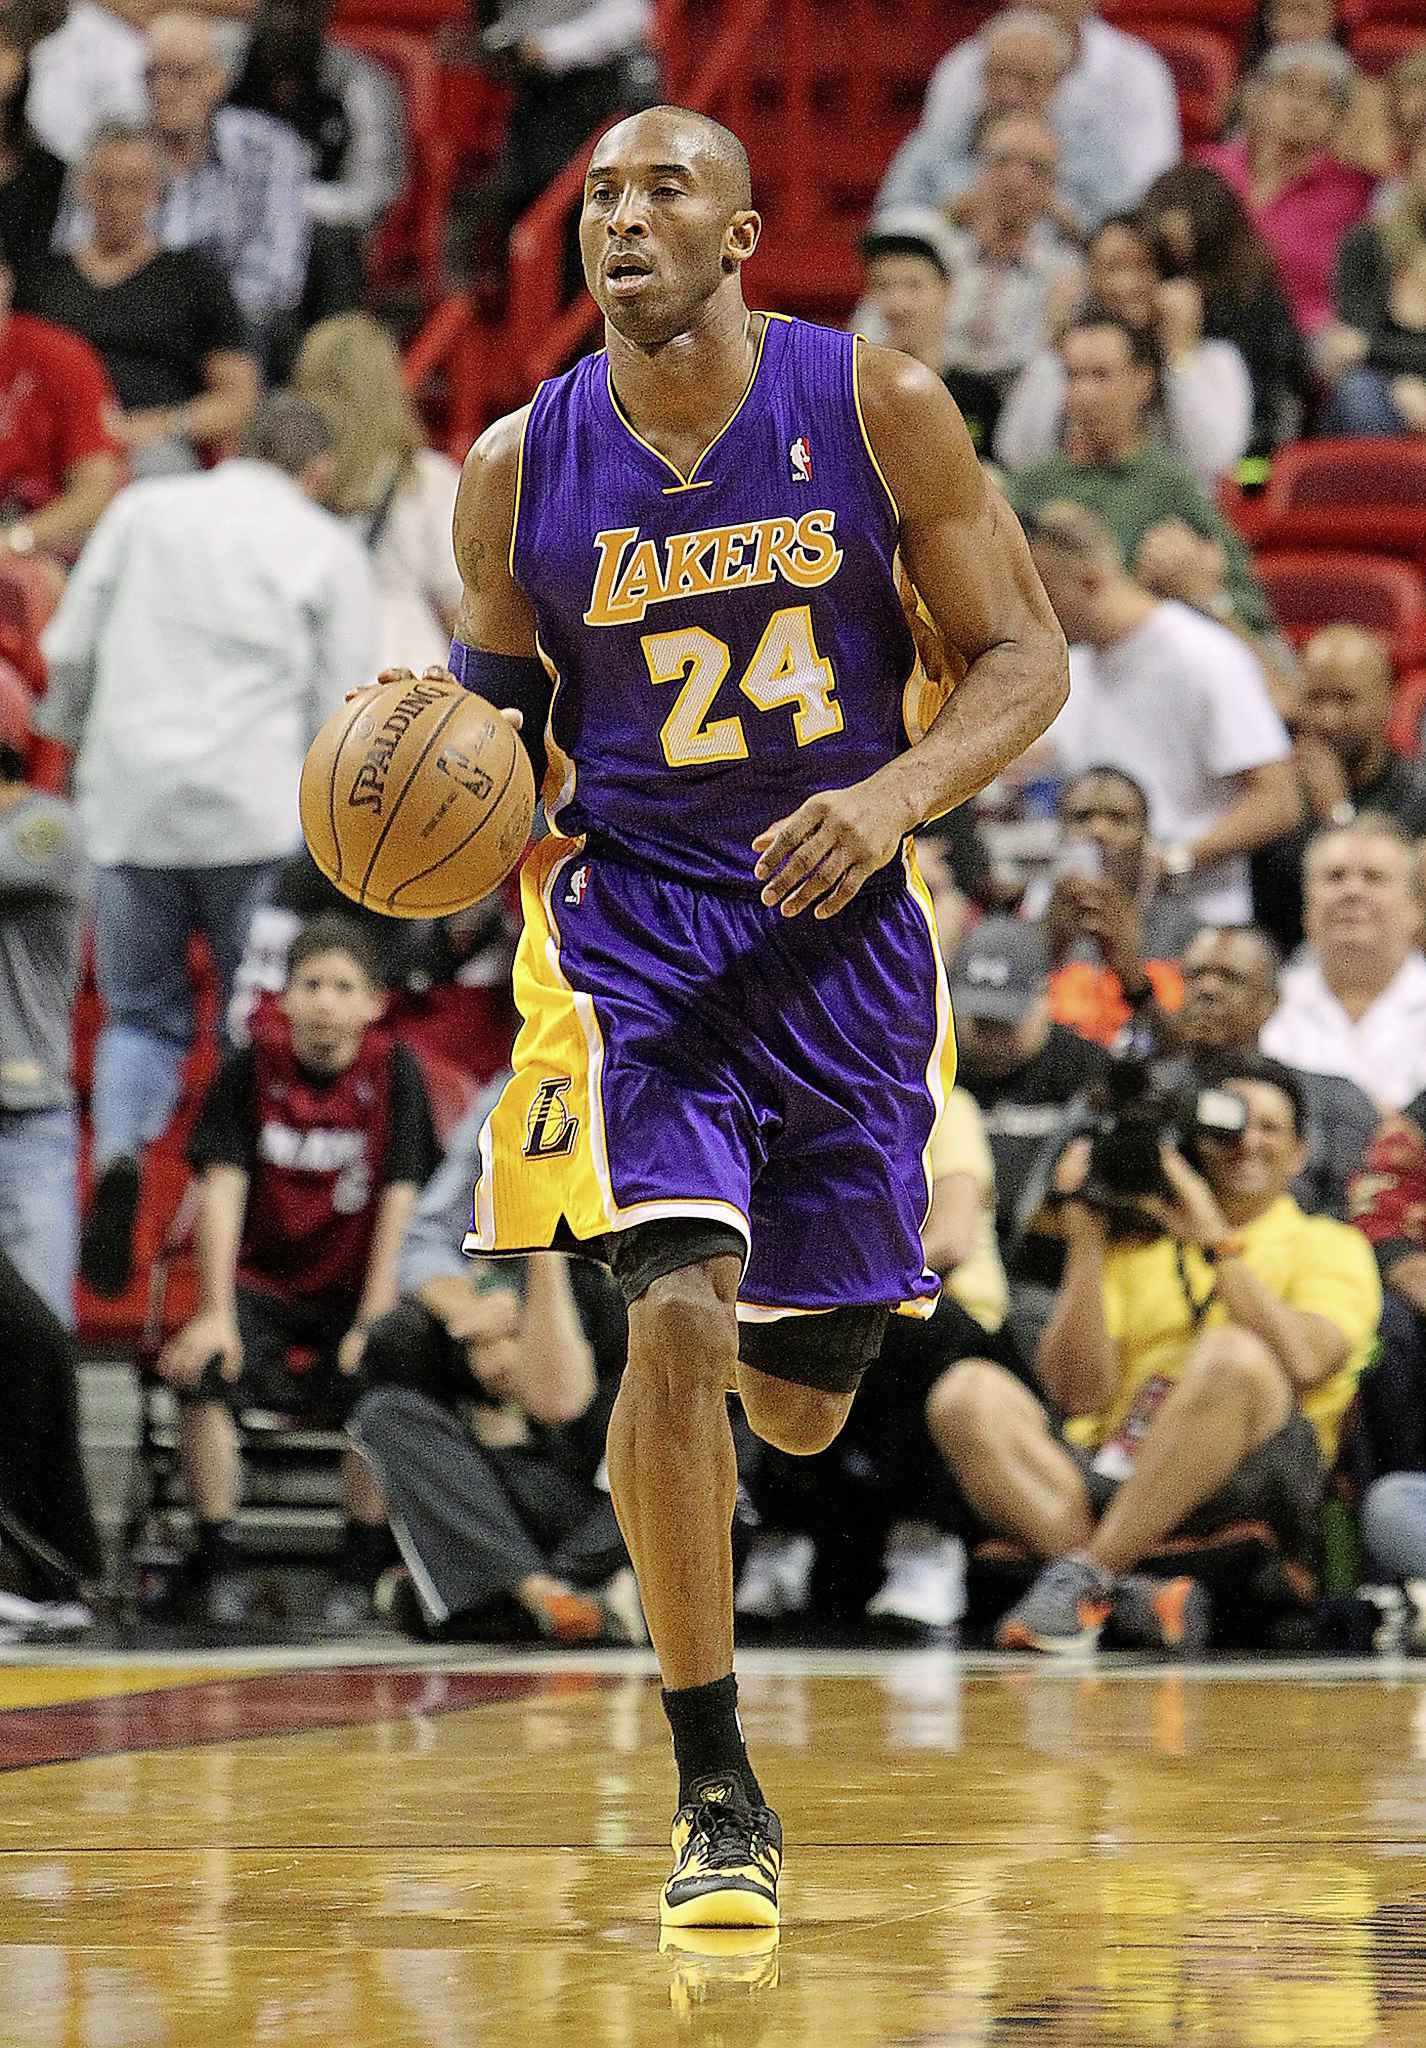 Kobe Bryant, his 13-year-old daughter and seven other people died Sunday in a helicopter crash. (David Santiago / El Nuevo Herald files)